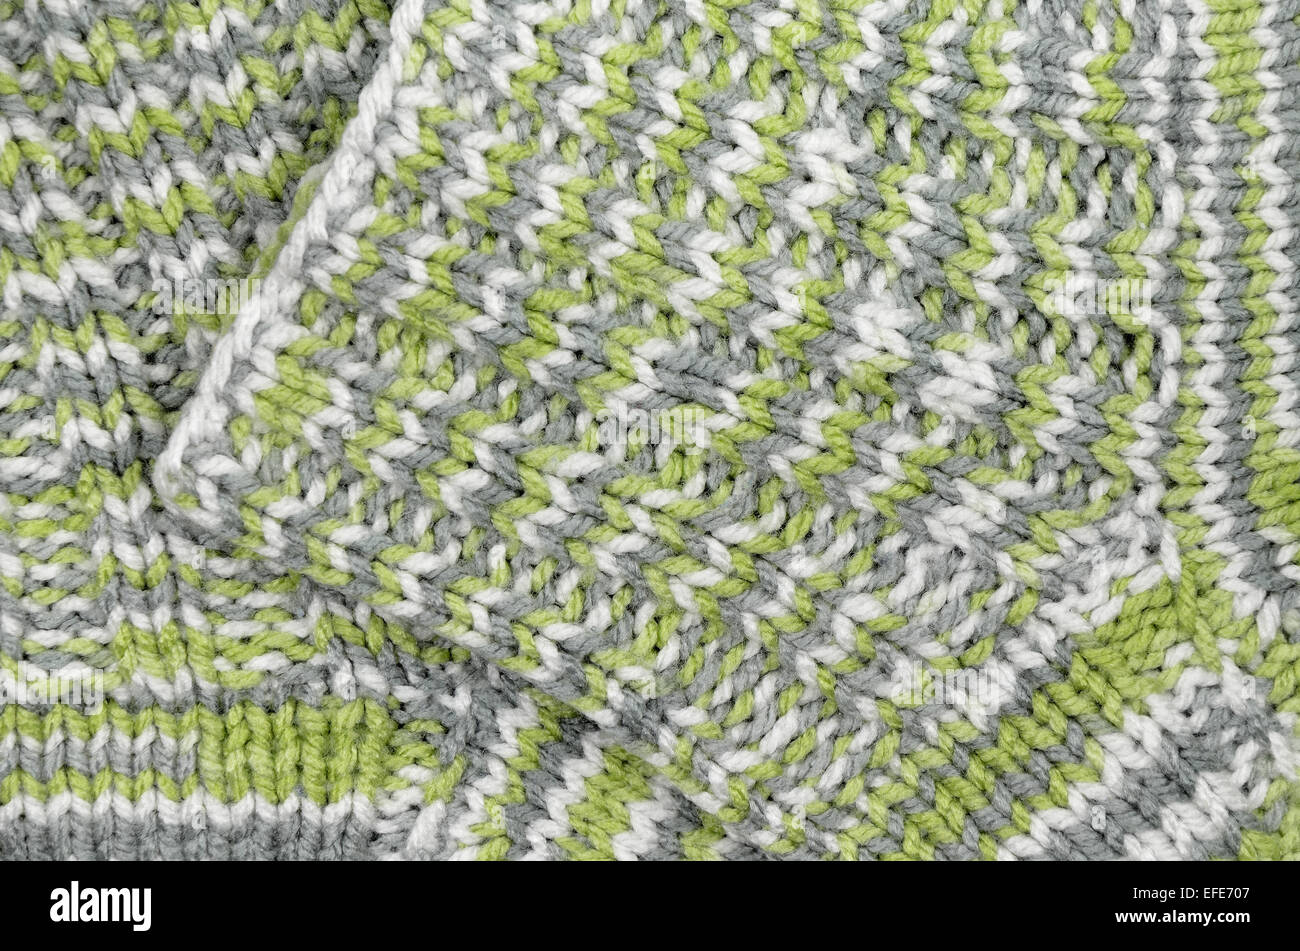 close up of two green, gray and white flecked and striped knitted wool socks, full frame - Stock Image